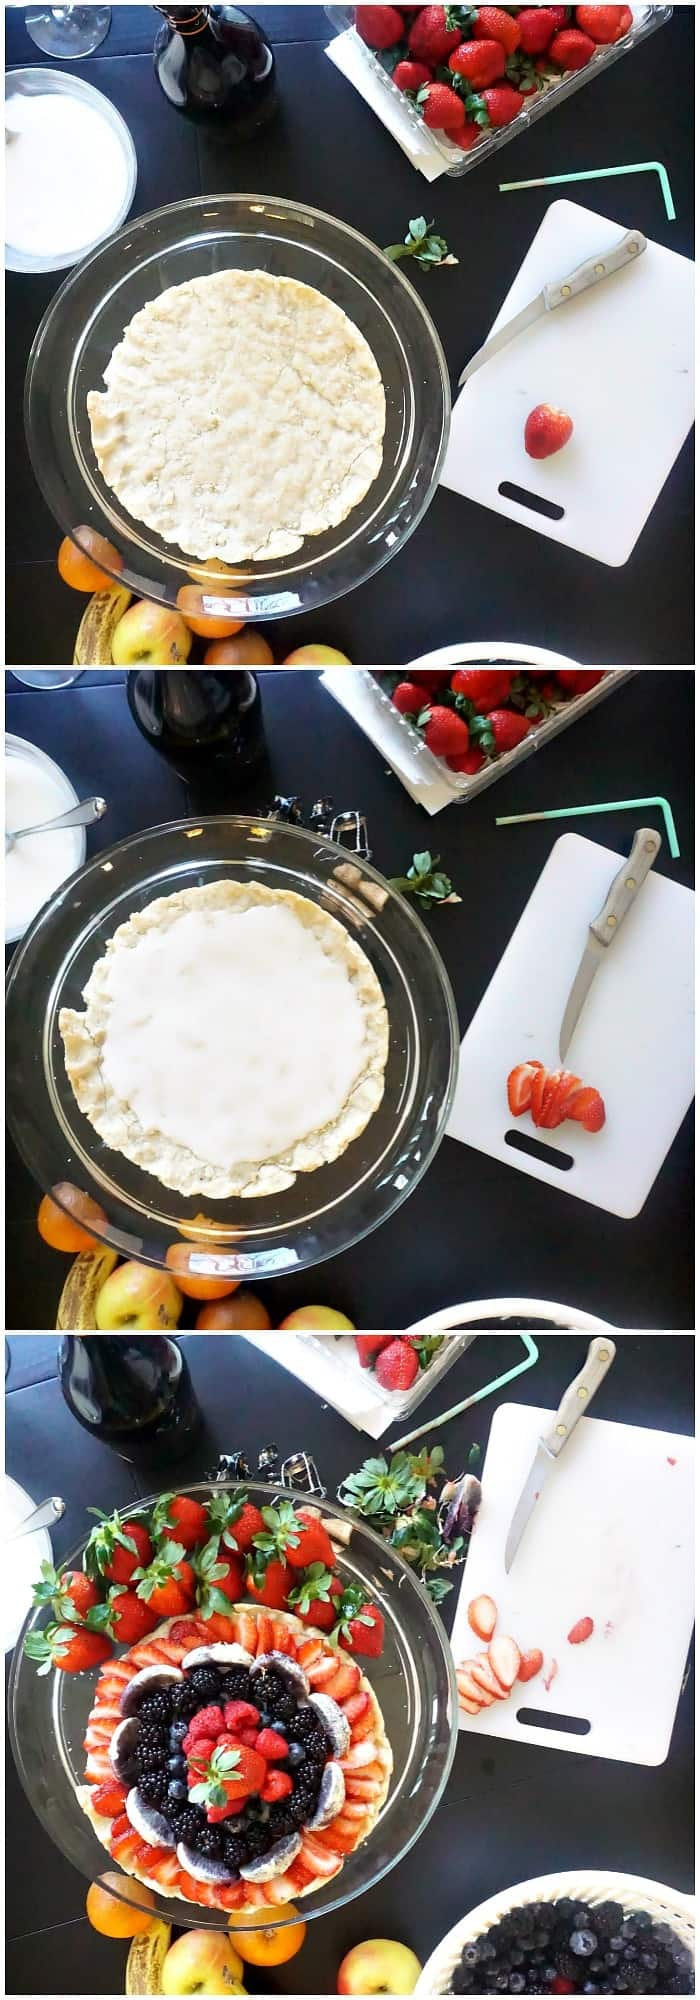 tutorial for making fruit pizza